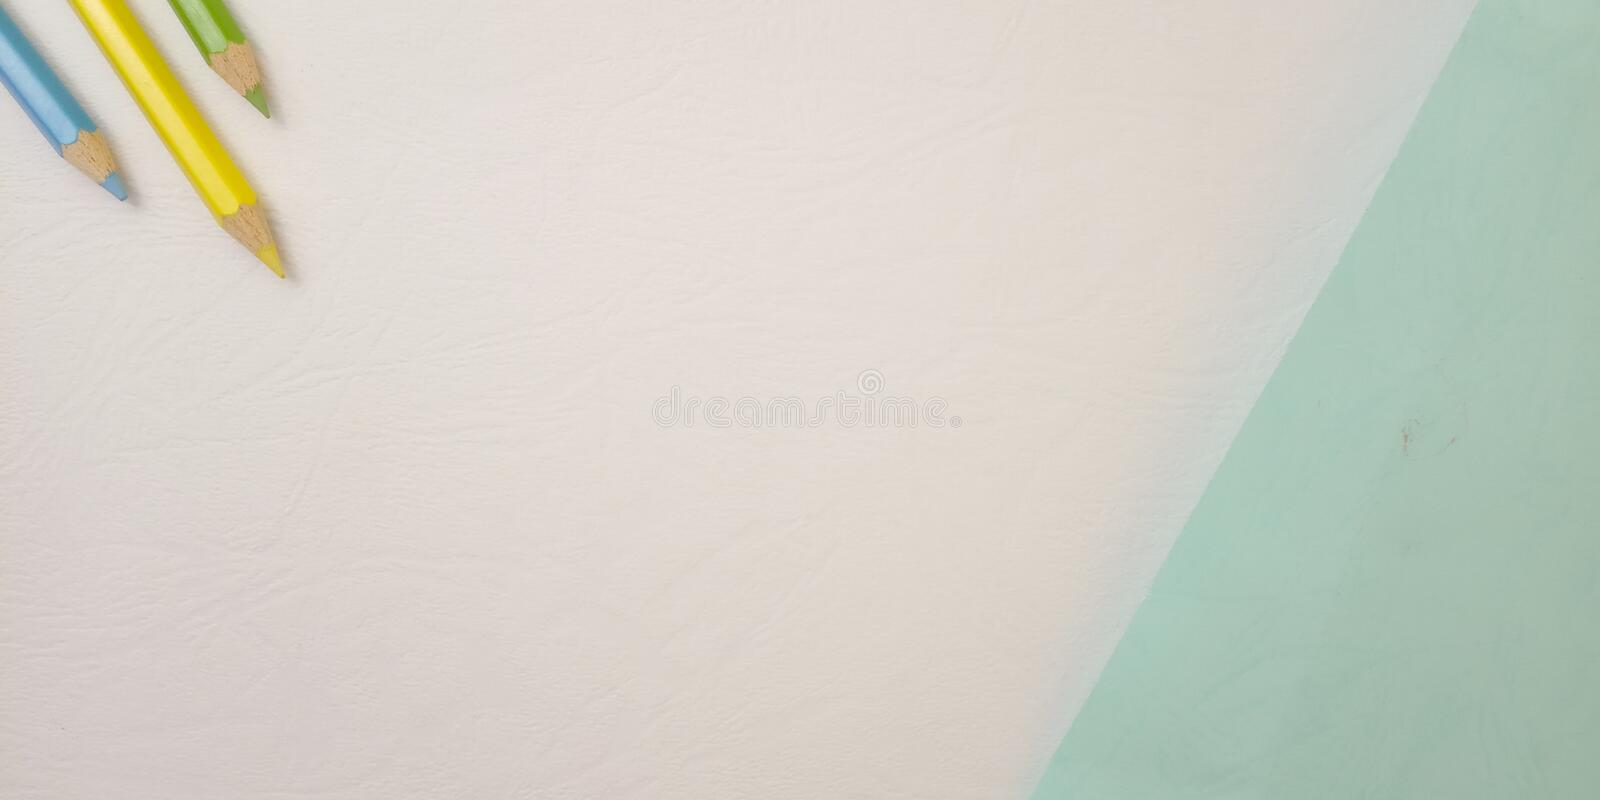 Flat Lay, White Photo Blank Template for Background Element Design for message, quote, information text placement with Blue Pencil. White Photo Blank Template royalty free stock photos